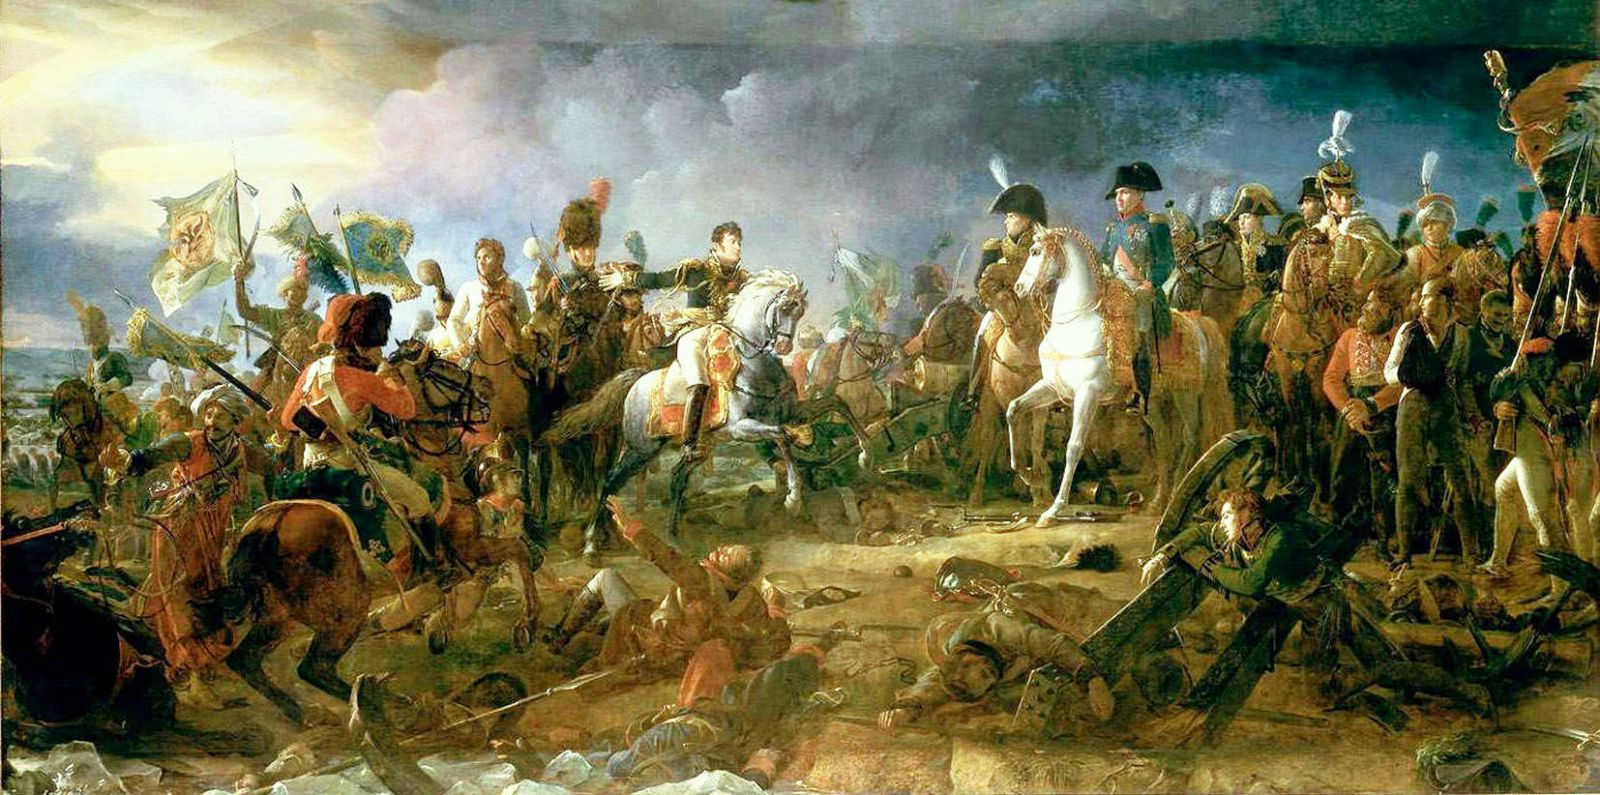 the reasons behind napoleons defeat in russia in 1812 Great britain was an island nation napoleon himself, in his memoirs, thought the peninsular war agreater military failure than defeat in russia.